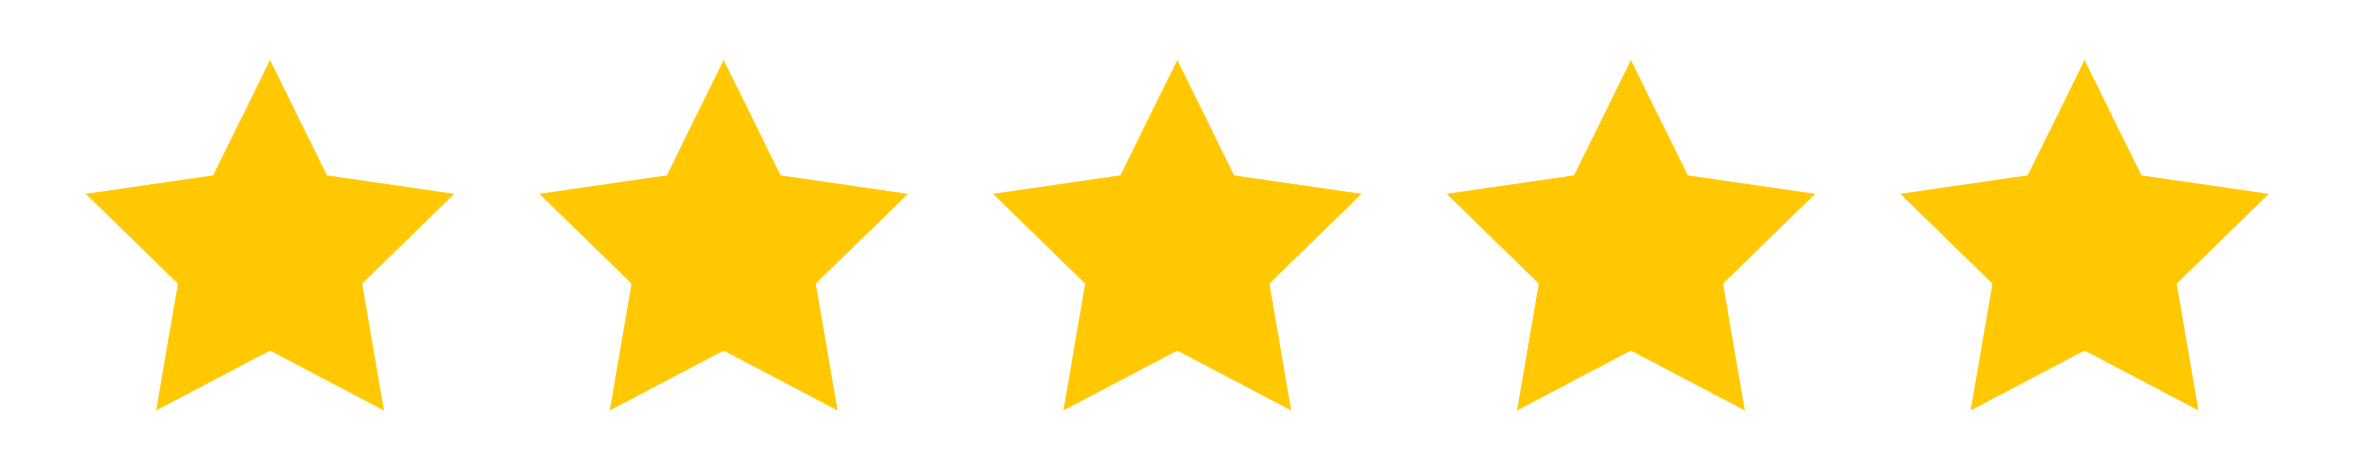 Reviews star rating from Diane C. for A-1 Self Storage in Fullerton, California